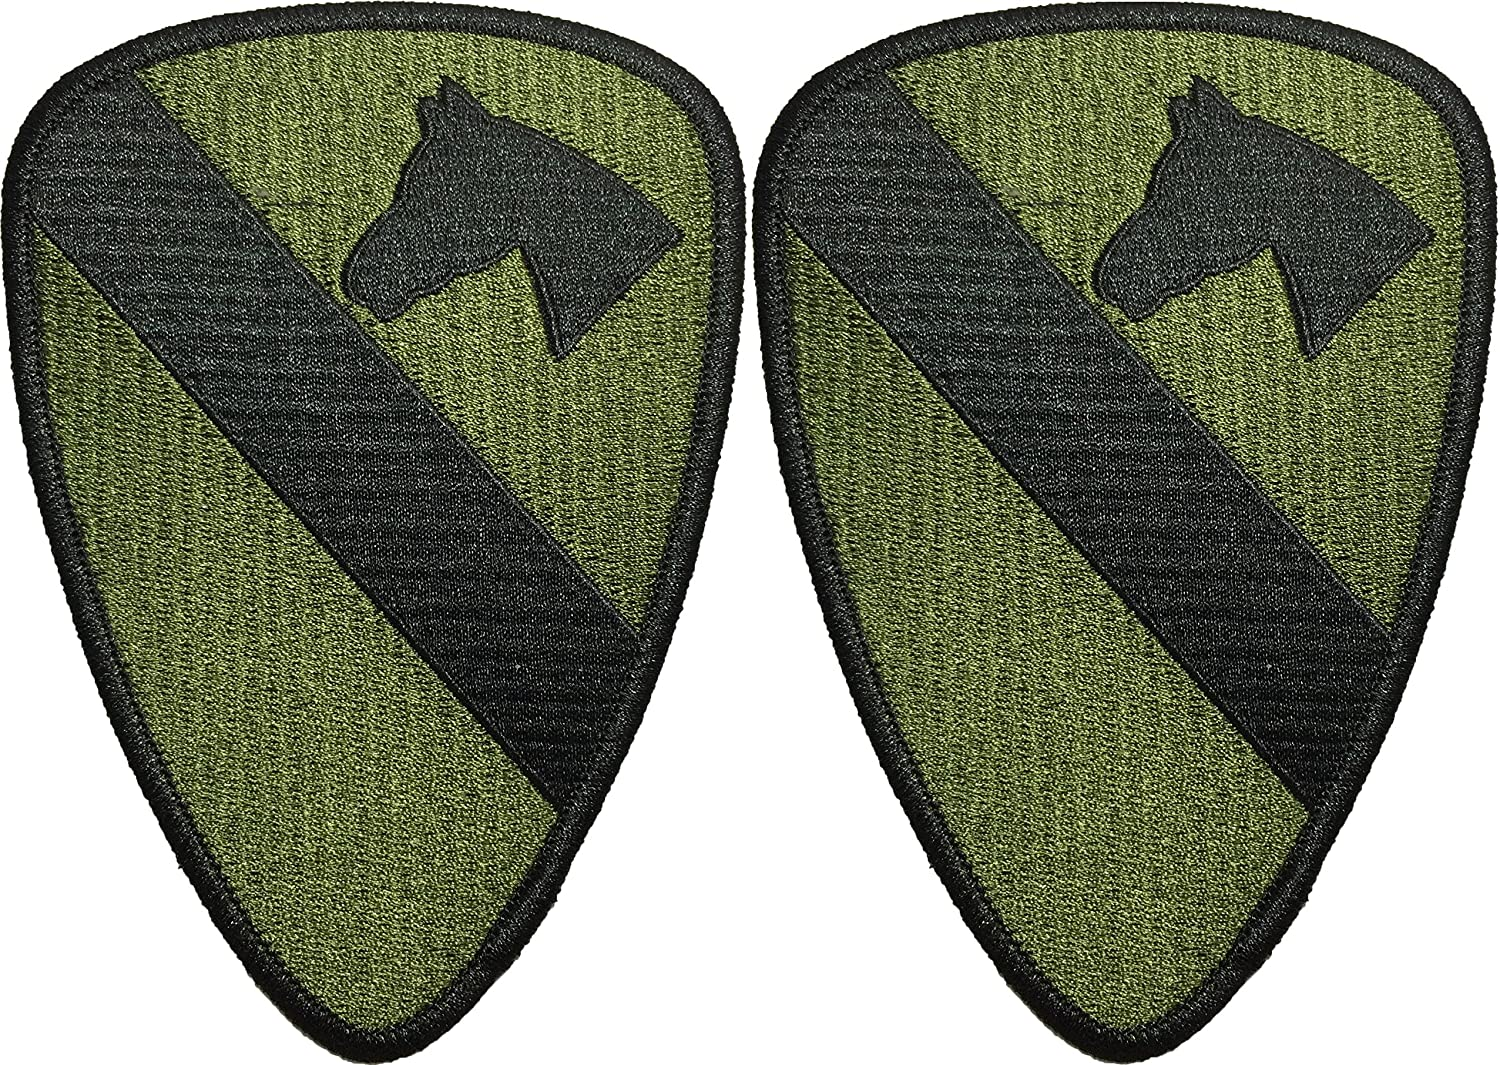 Green OD Army Tactical Vest Logo DIY Applique Embroidered Sew on Iron on Emblem Badge Costume Patch Set 2 of 1st Cavalry Horse HQ Military U.S